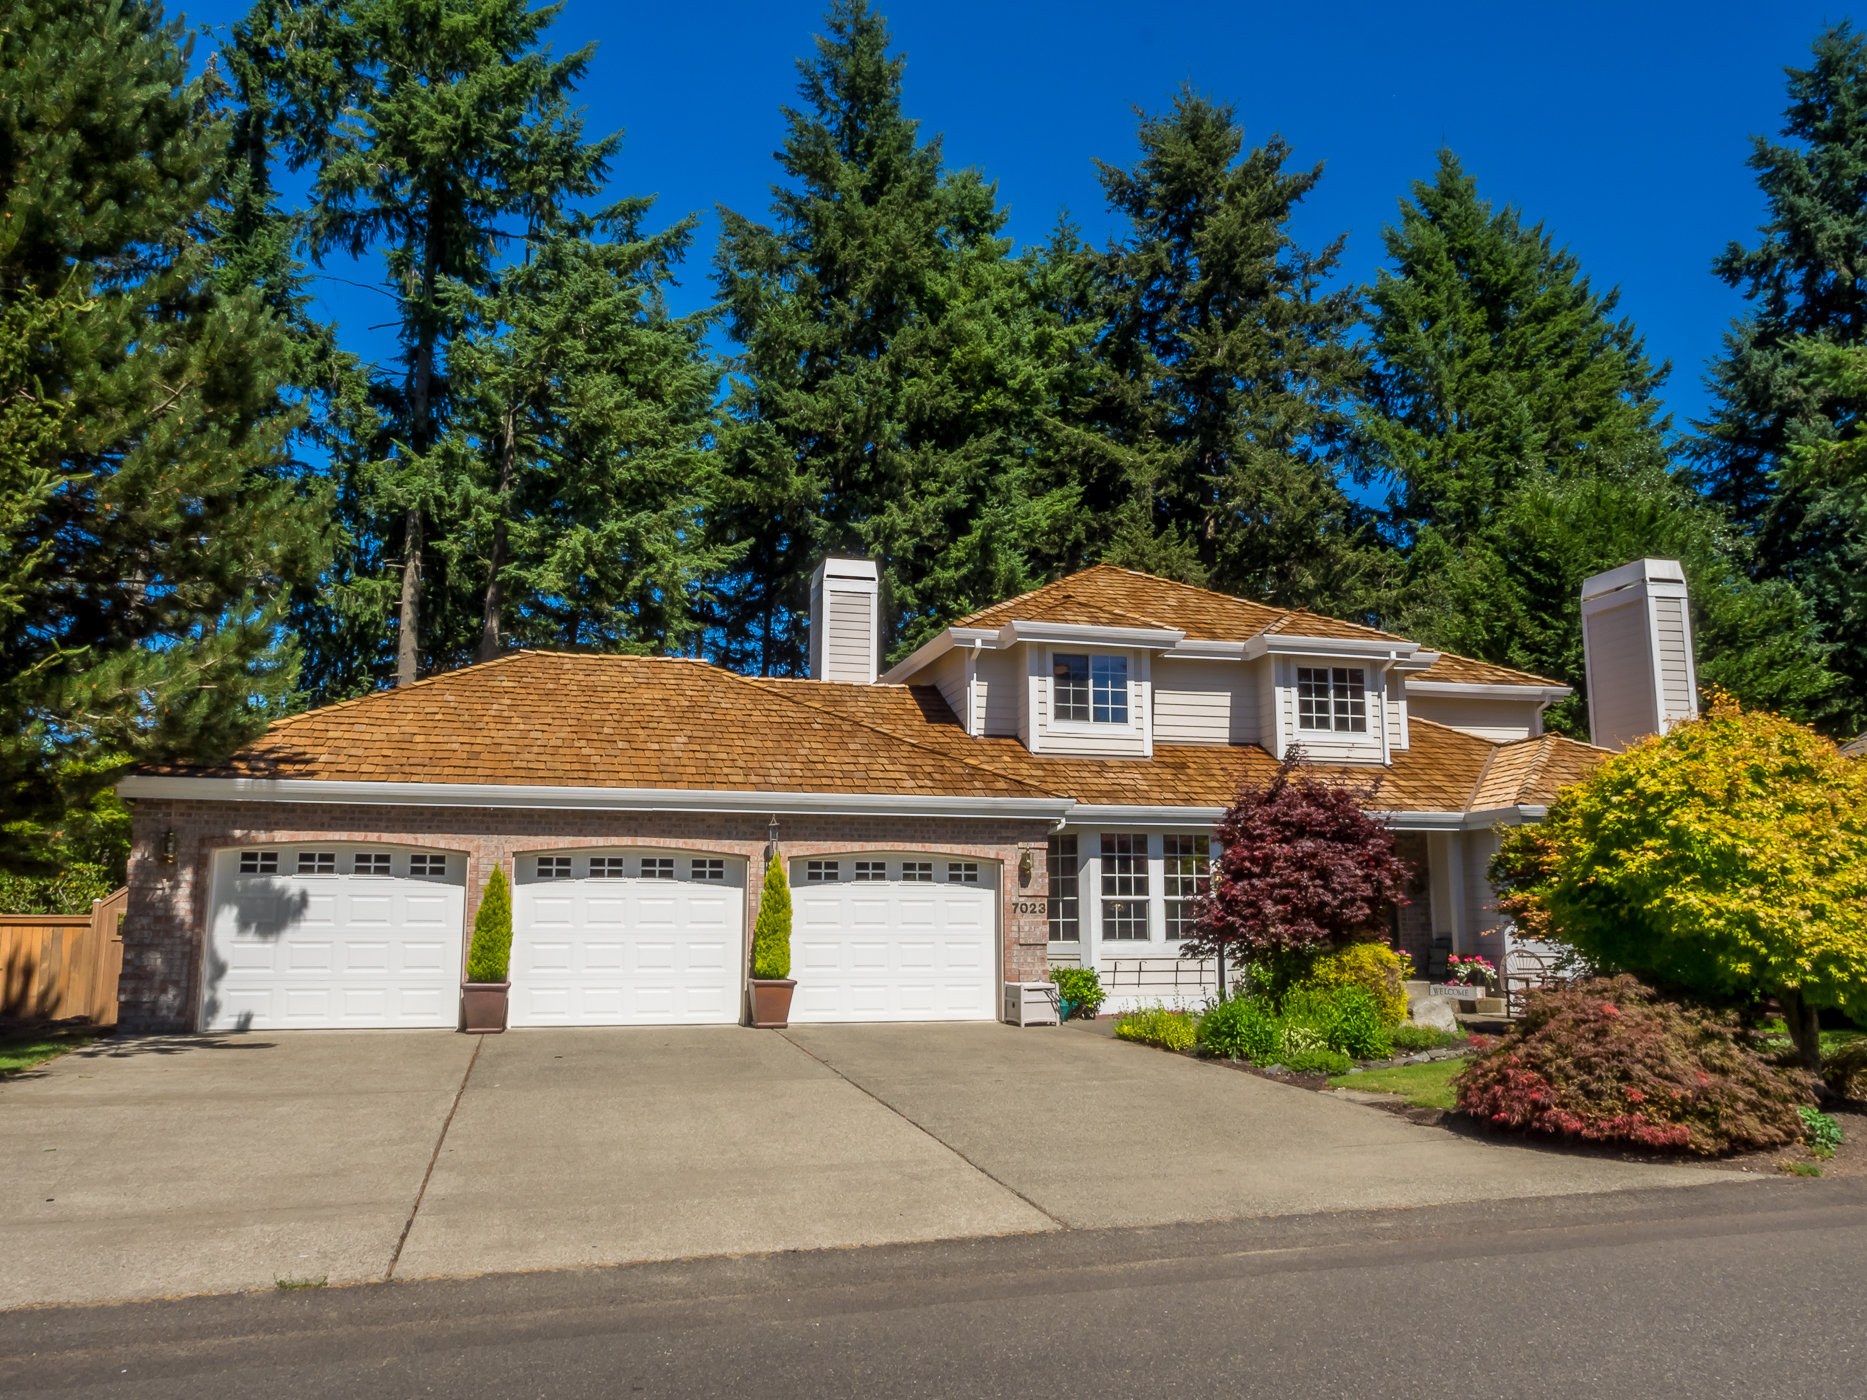 Single Family Home for Sale at Northwest Contemporary Home 7023 65th Ave W Lakewood, Washington 98499 United States